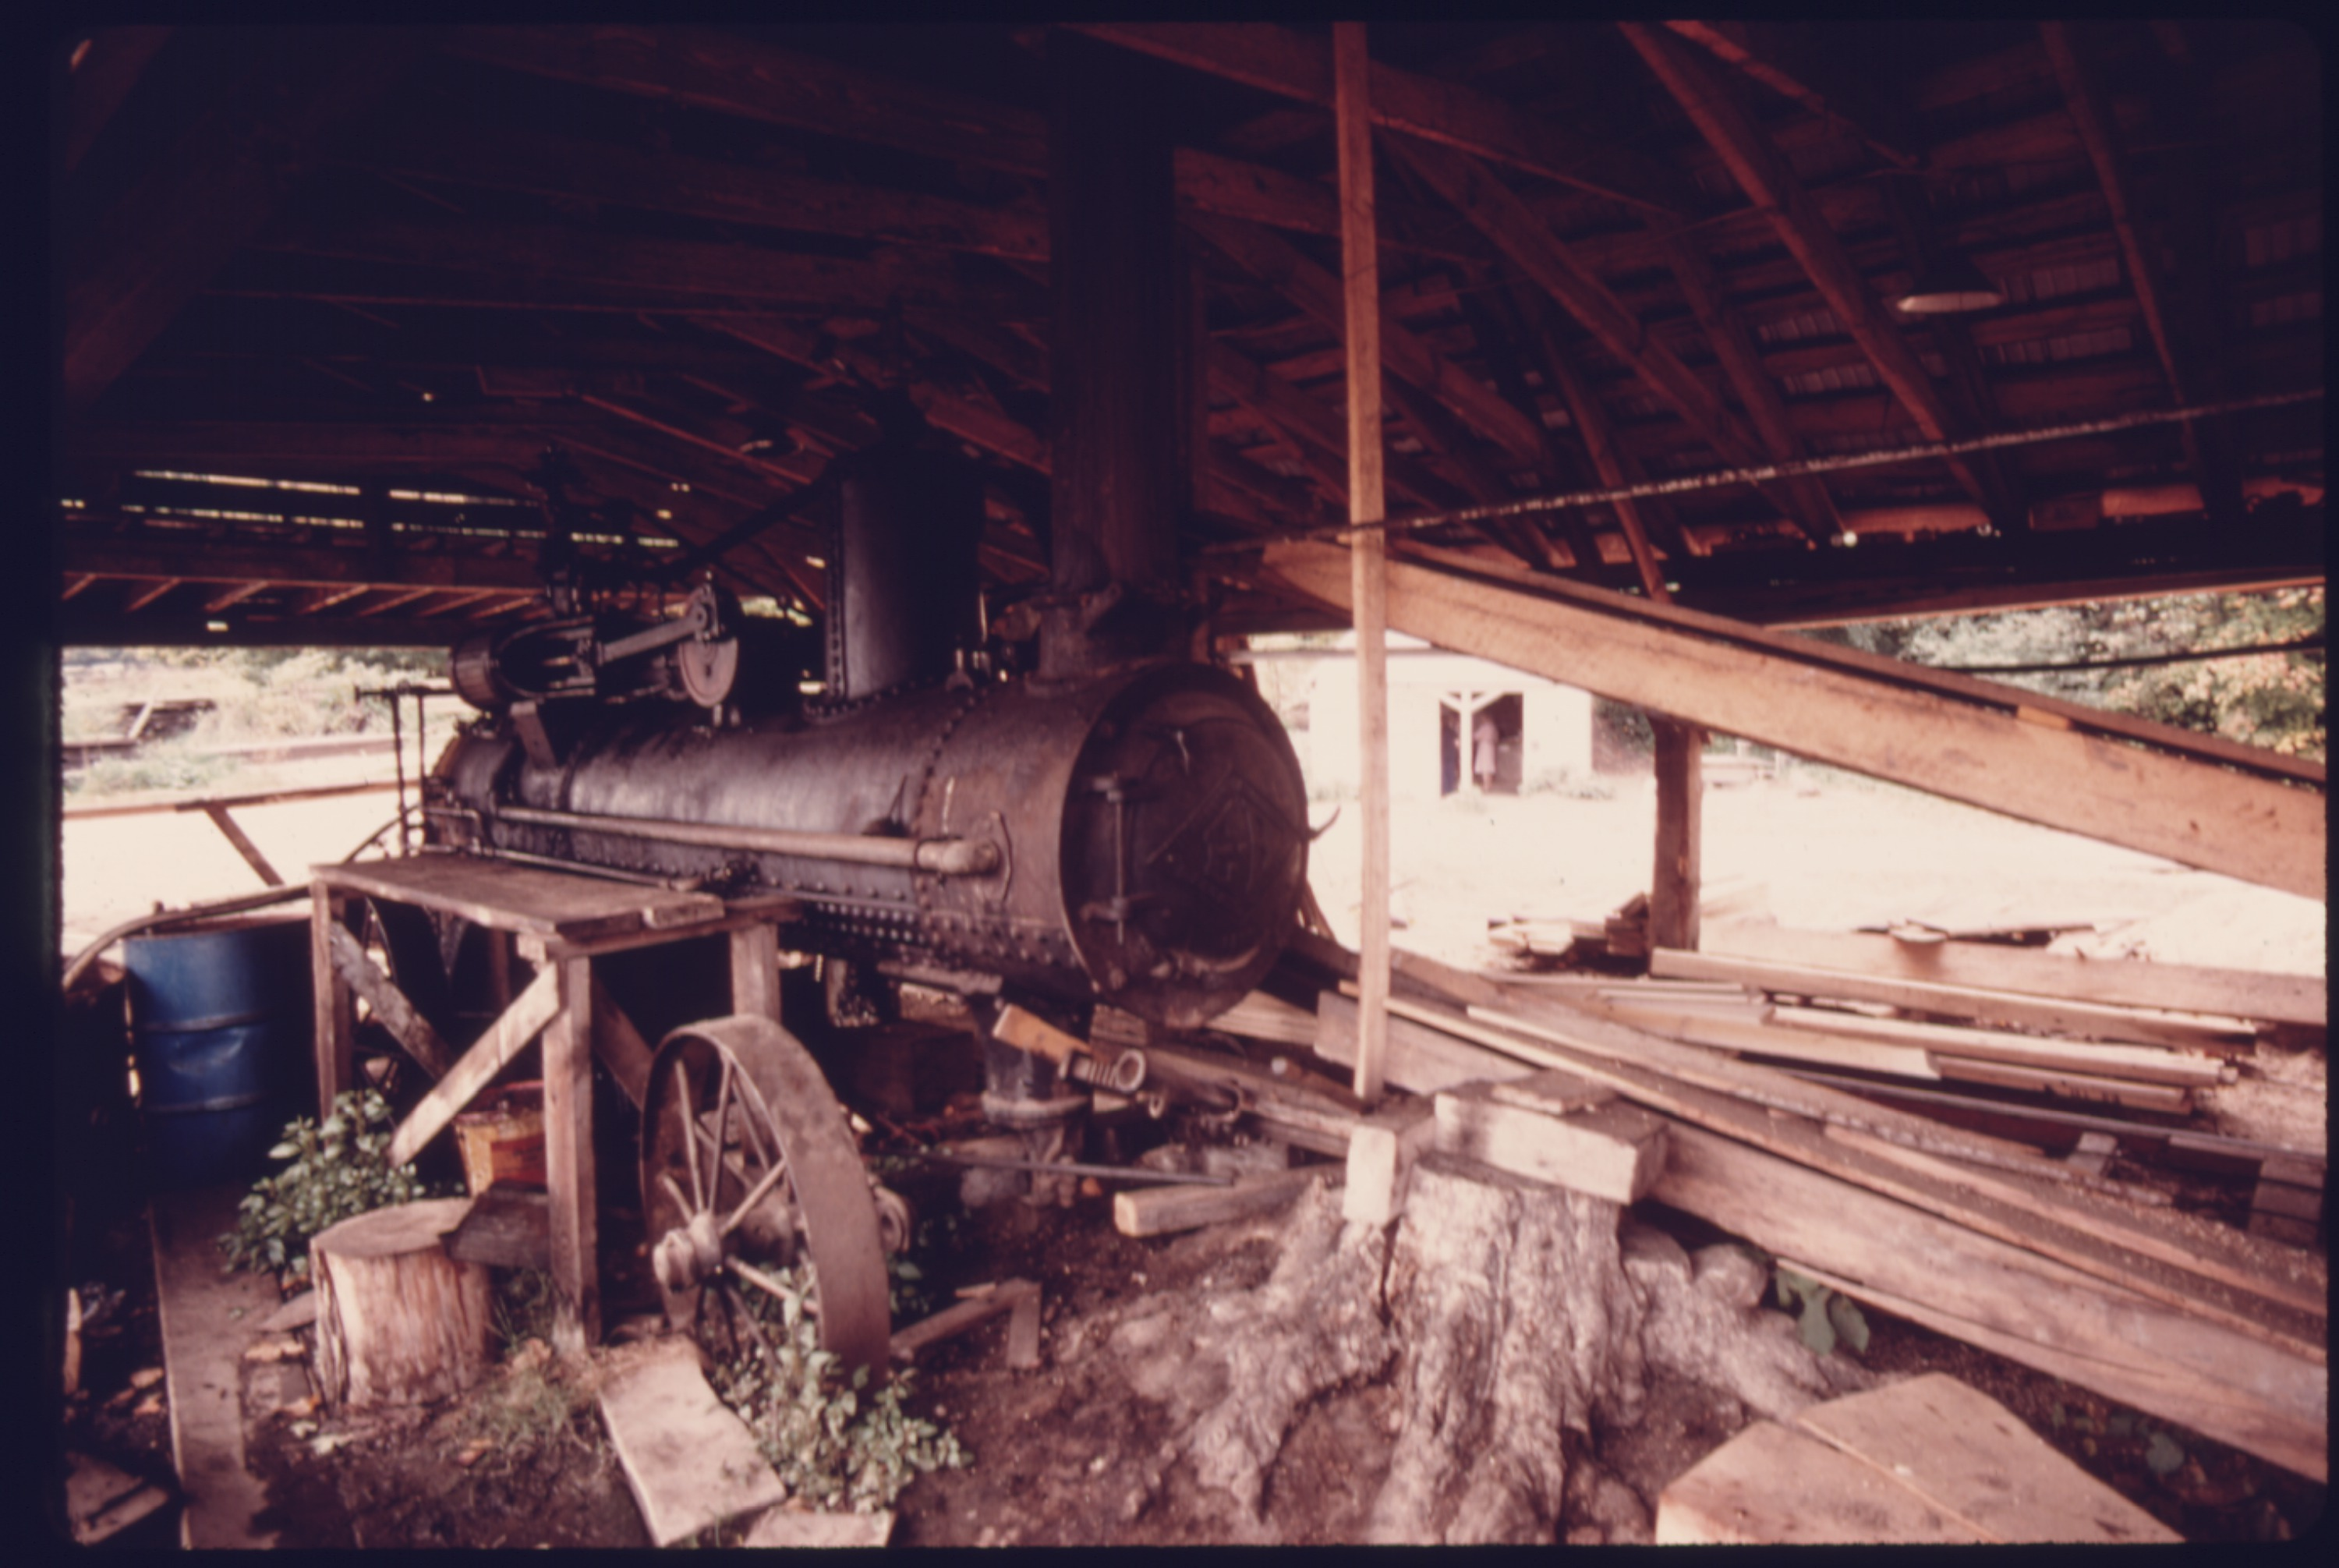 File:STEAM BOILER AND ENGINE AT THE HALE FARM AND WESTERN RESERVEreserve village